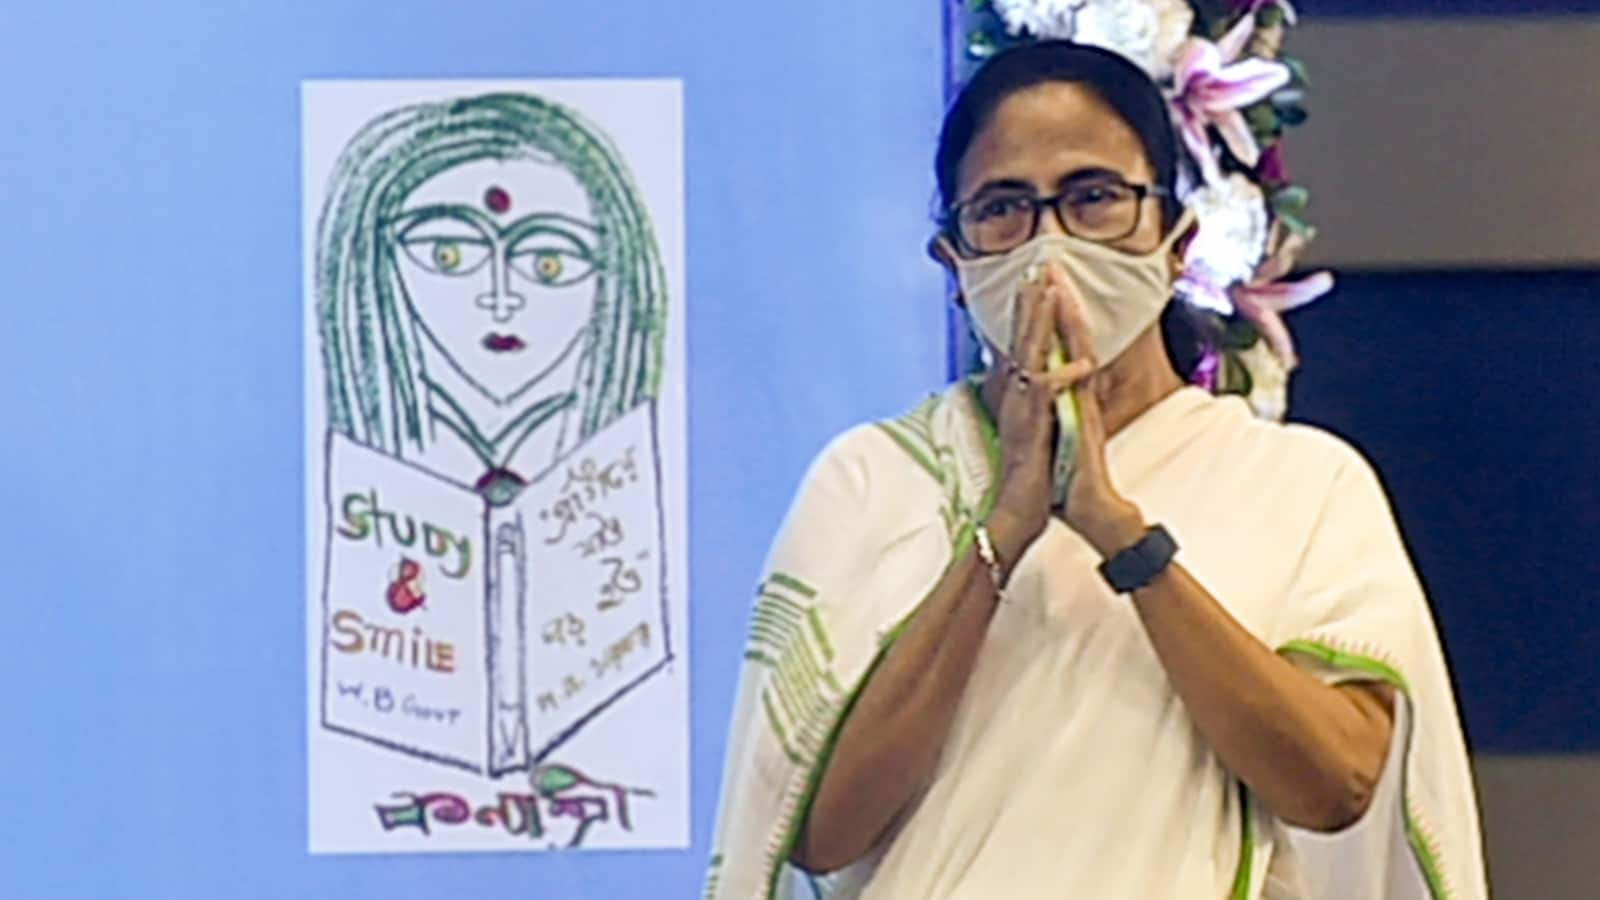 Requested Unesco to declare Durga Puja a global festival, celebrations to abide by Covid-norms: Mamata Banerjee